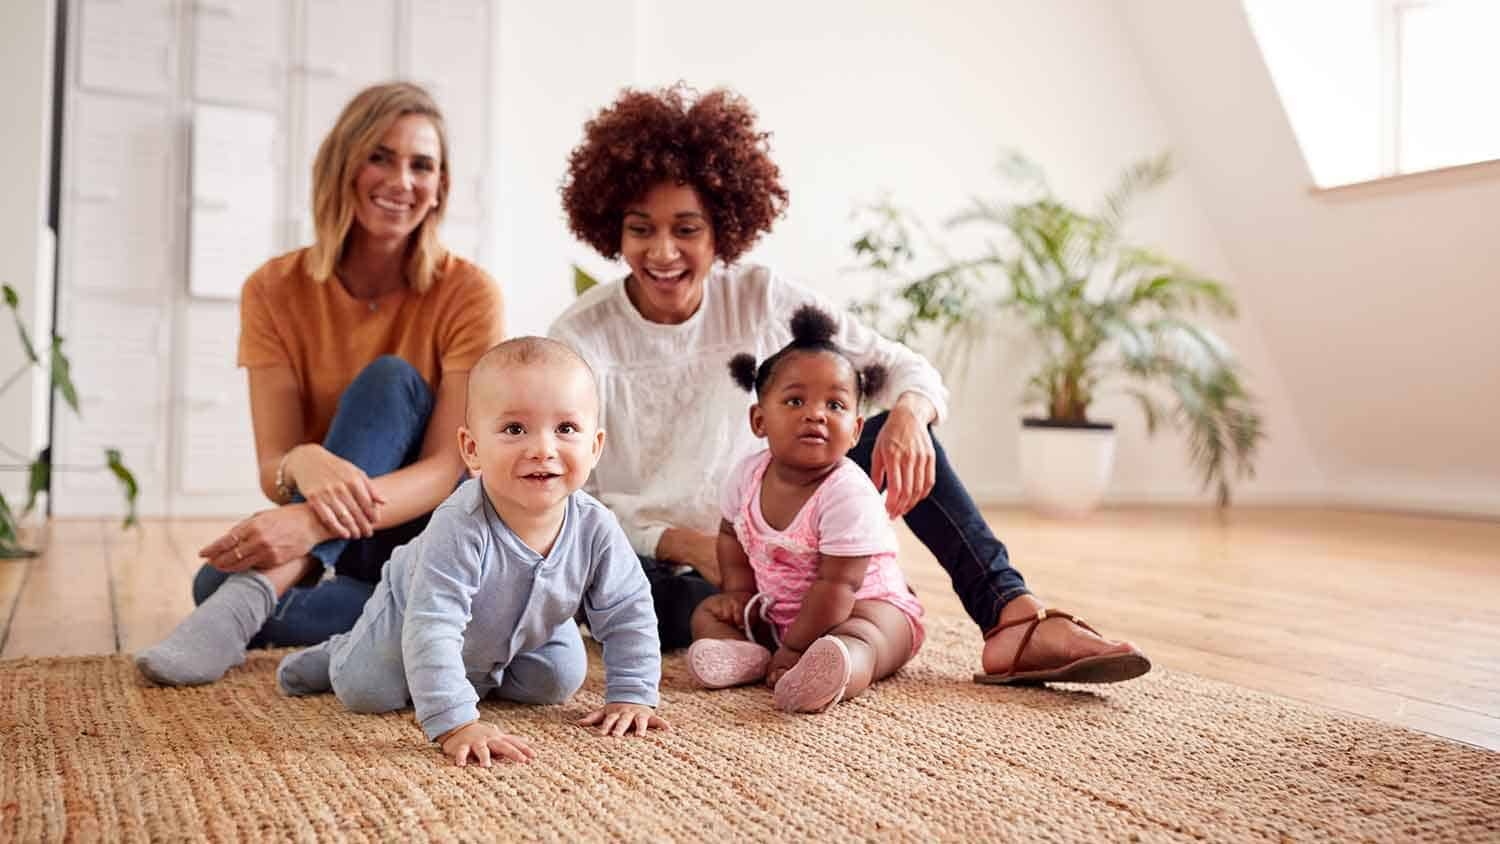 Two women sat on the floor with their young babies crawling toward the camera.